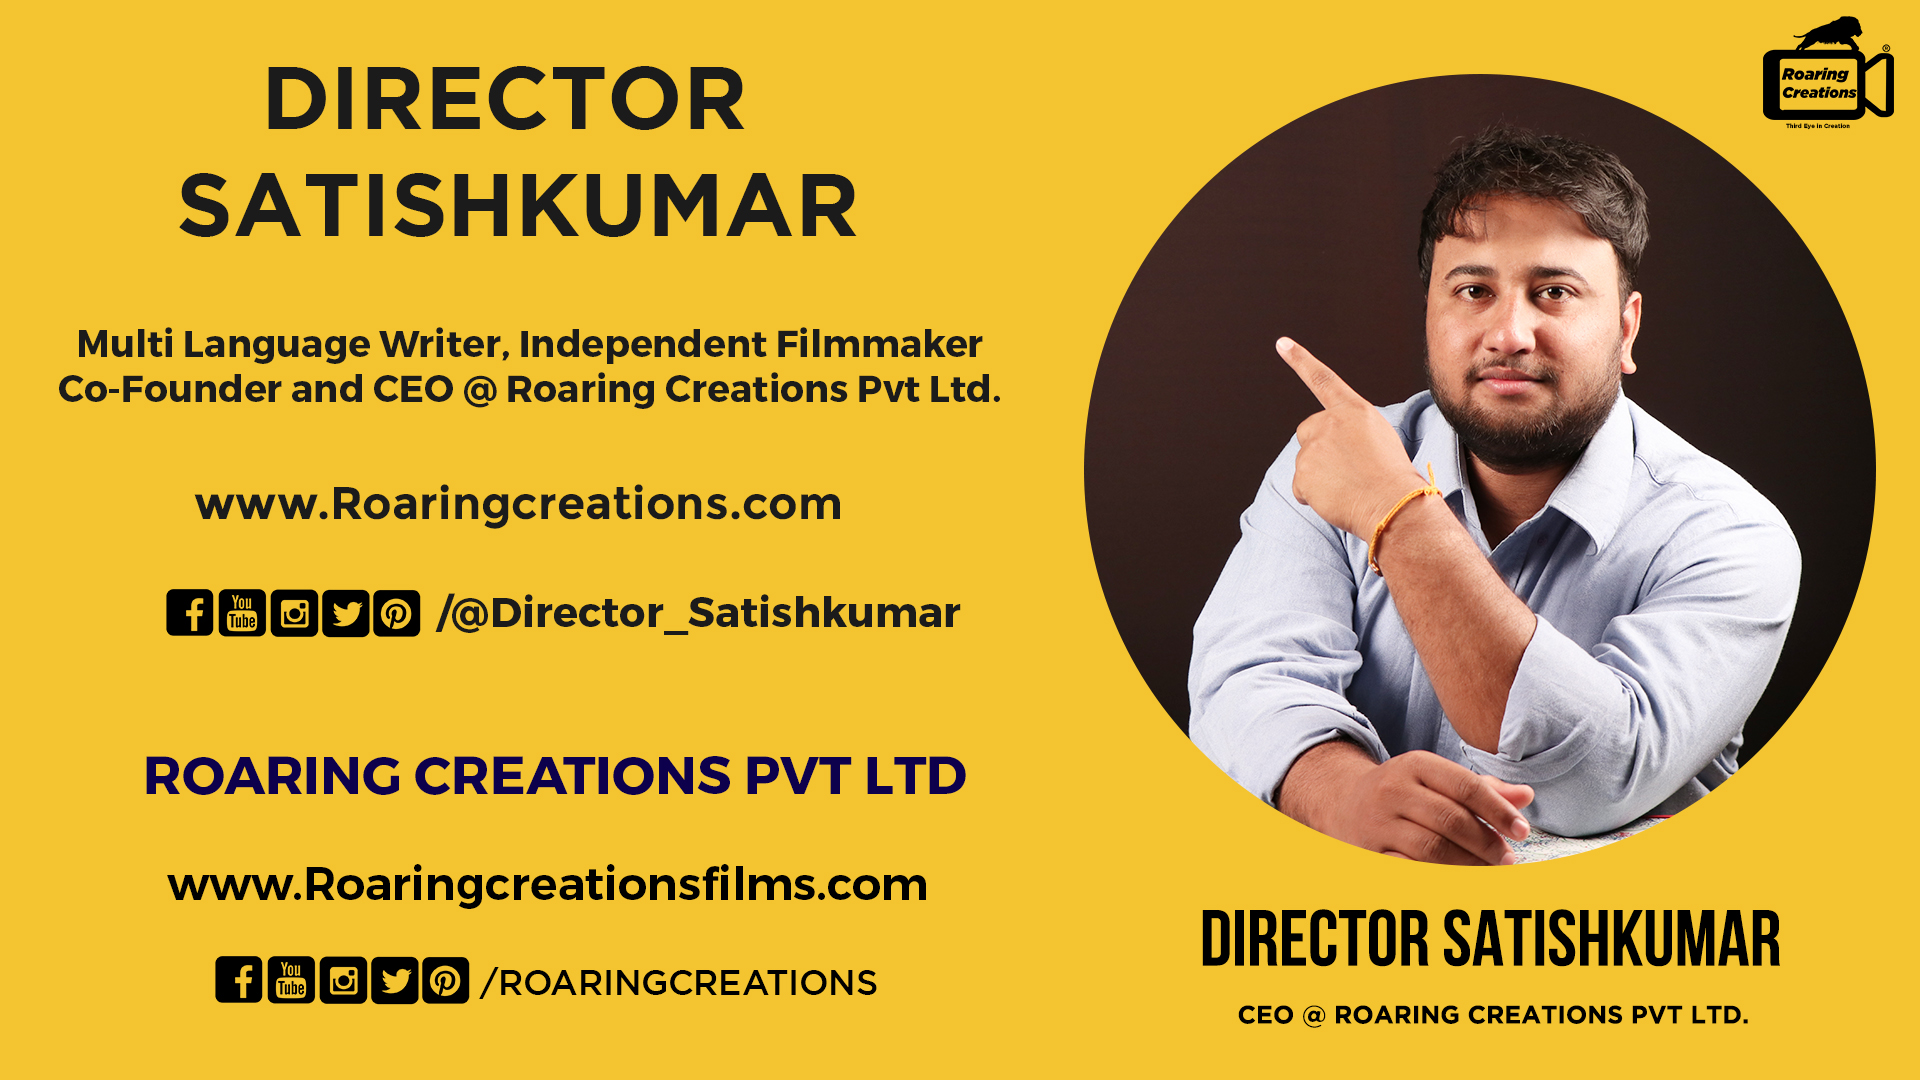 Director Satishkumar